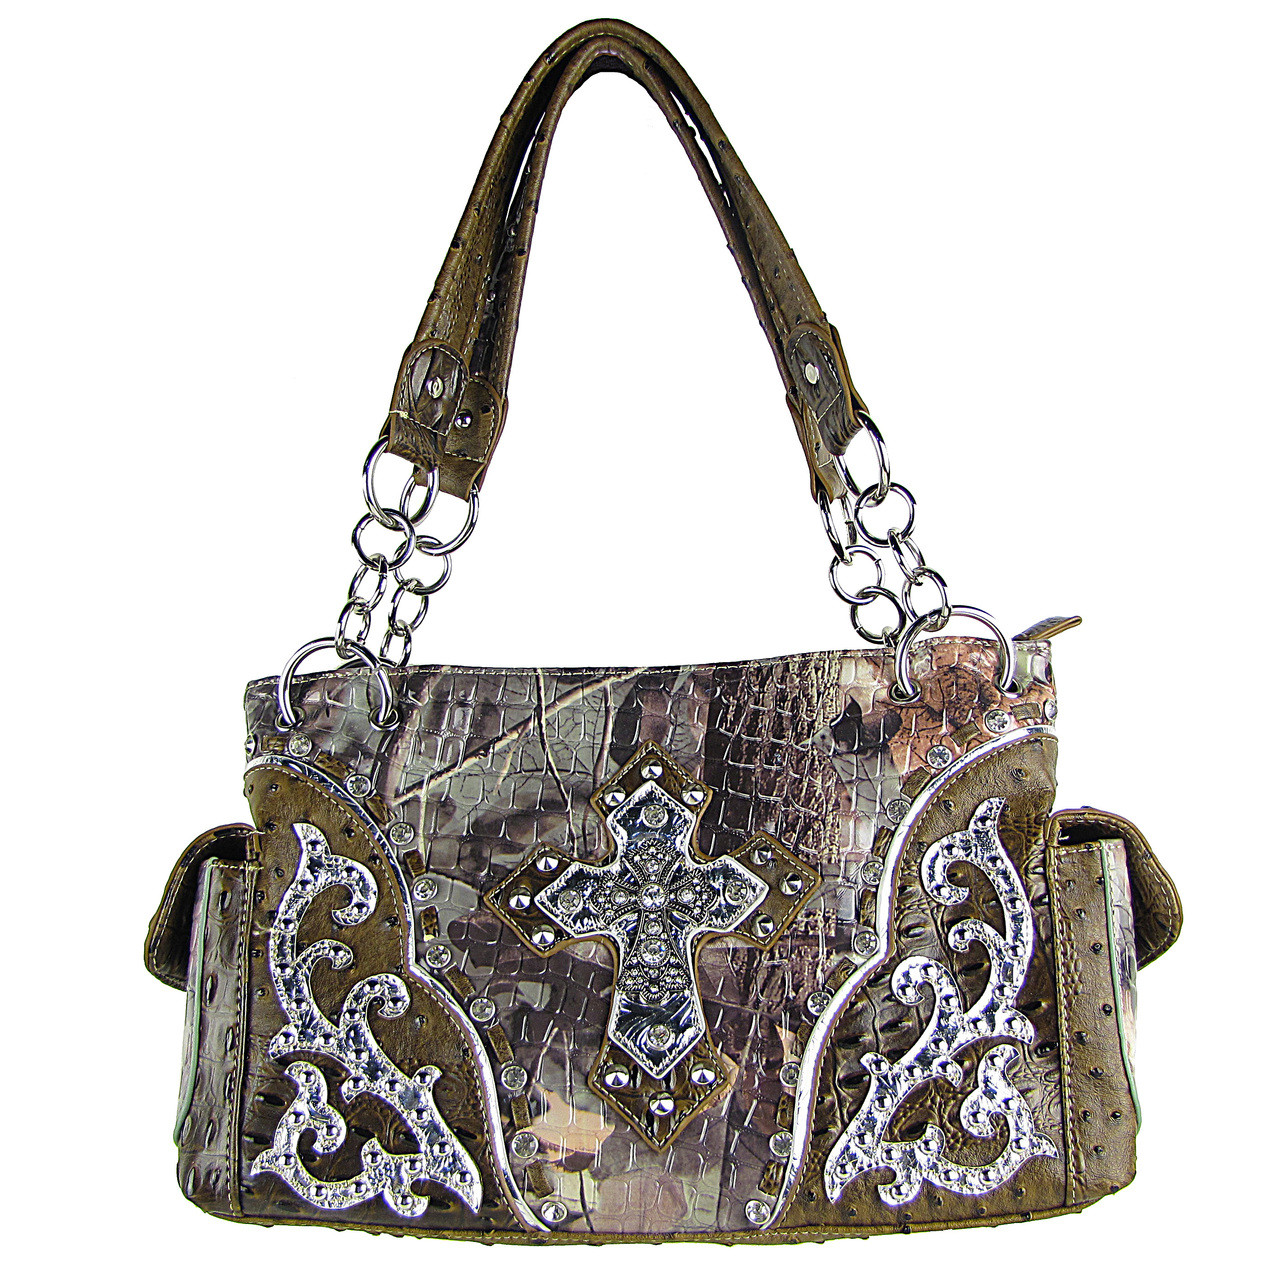 BROWN WESTERN STUDDED RHINESTONE MOSSY CAMO METALLIC CROSS LOOK SHOULDER HANDBAG HB1-HC402-10BRN